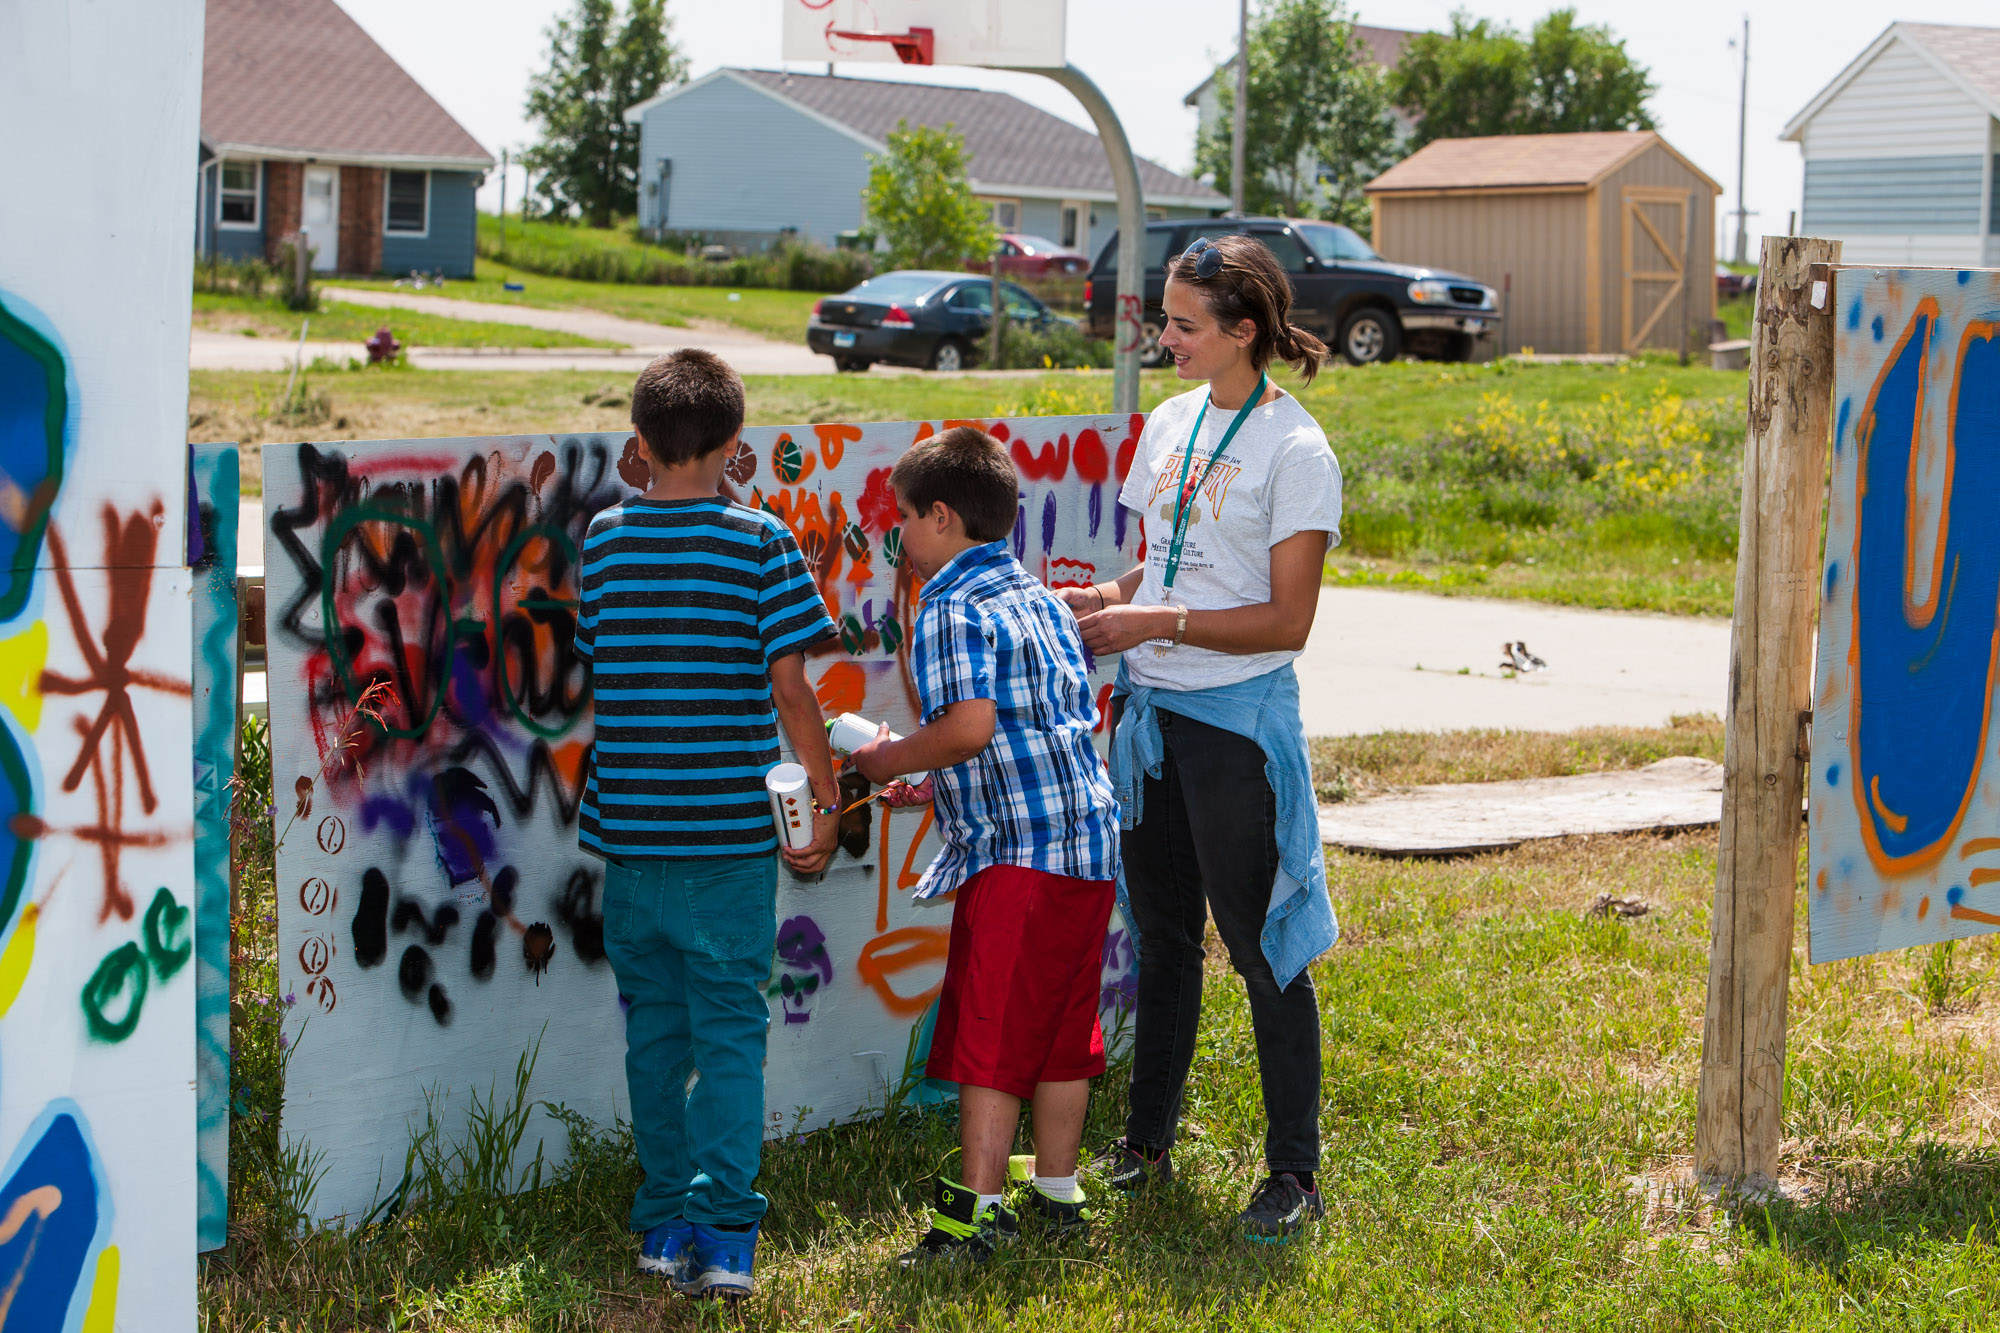 REDCAN IS BACK: GRAFFITI CULTURE AND LAKOTA CULTURE ONCE